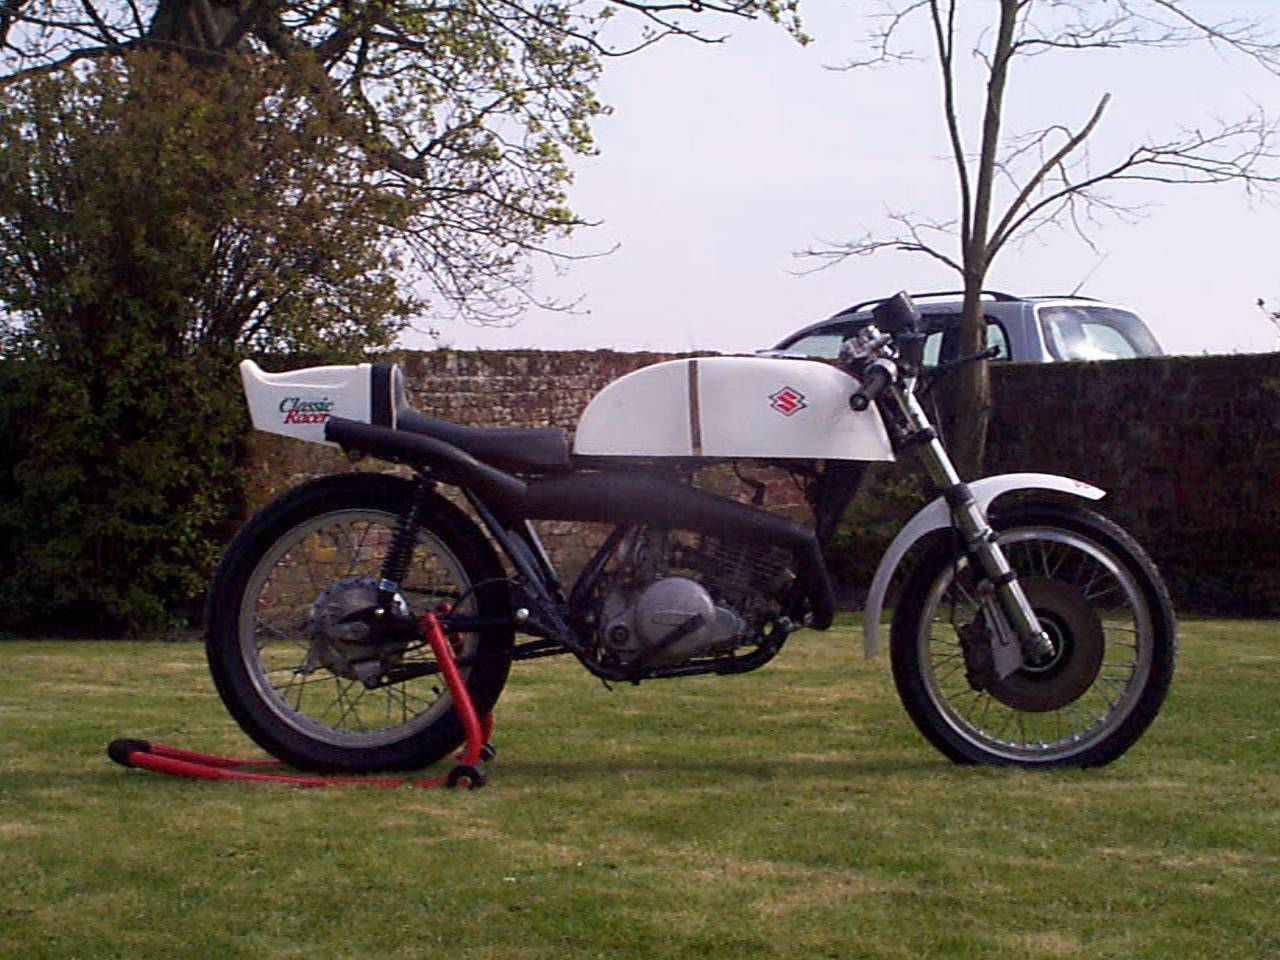 the ts250 project 2011 during 1975 the former uk ducati importer vic camp created a new lightweight 250cc racer based on suzuki s popular ts 250 trail bike